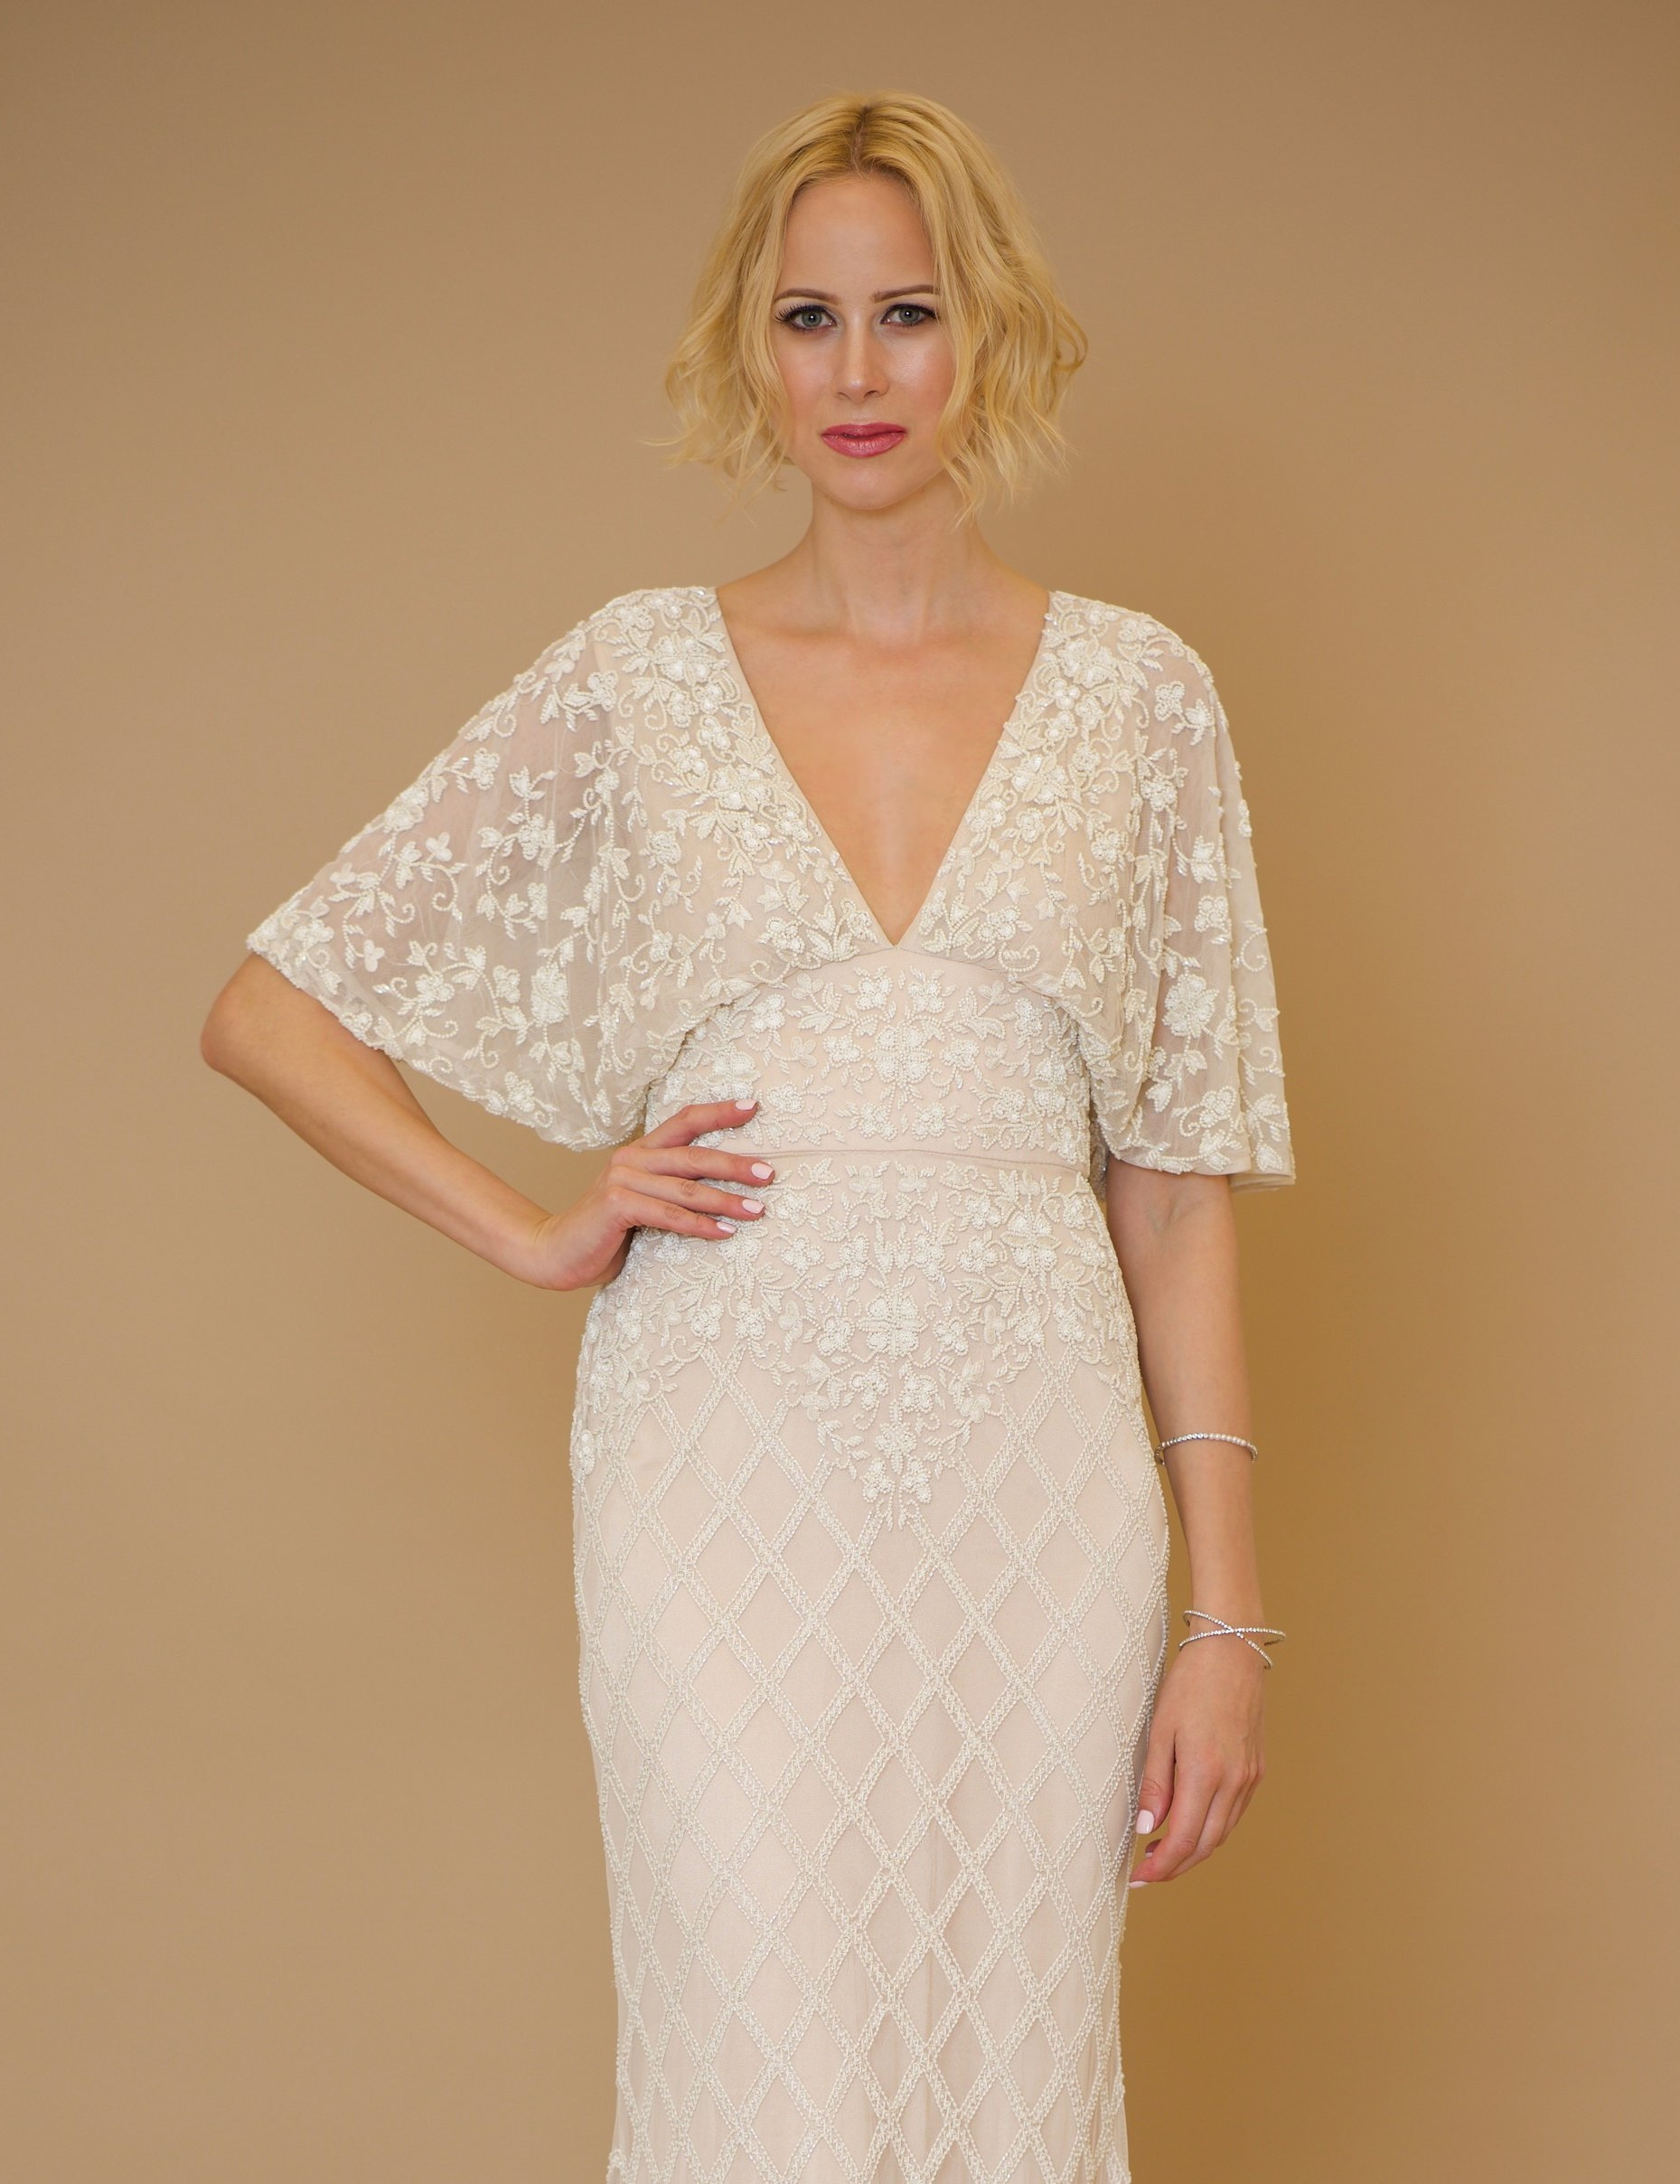 Chic Nostalgia Wedding Dress 2